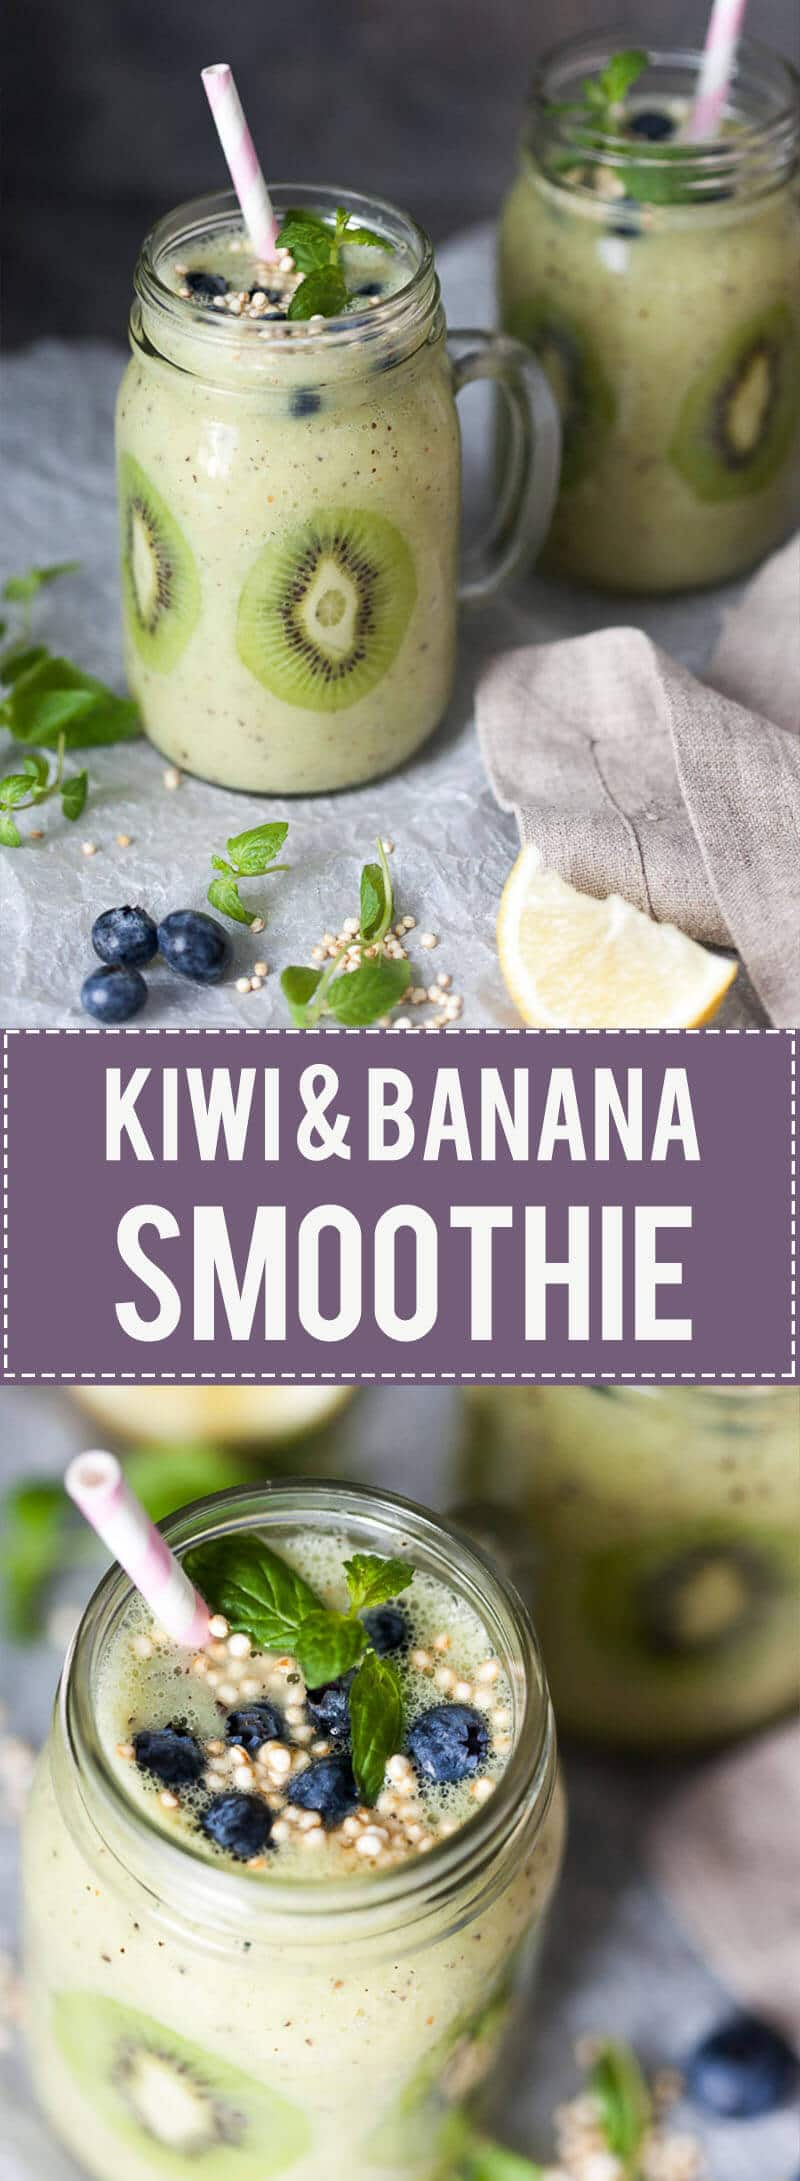 This Kiwi Banana Smoothie with Blueberries looks almost like Spring! Just a couple of minutes and a few ingredients to make. | www.vibrantplate.com